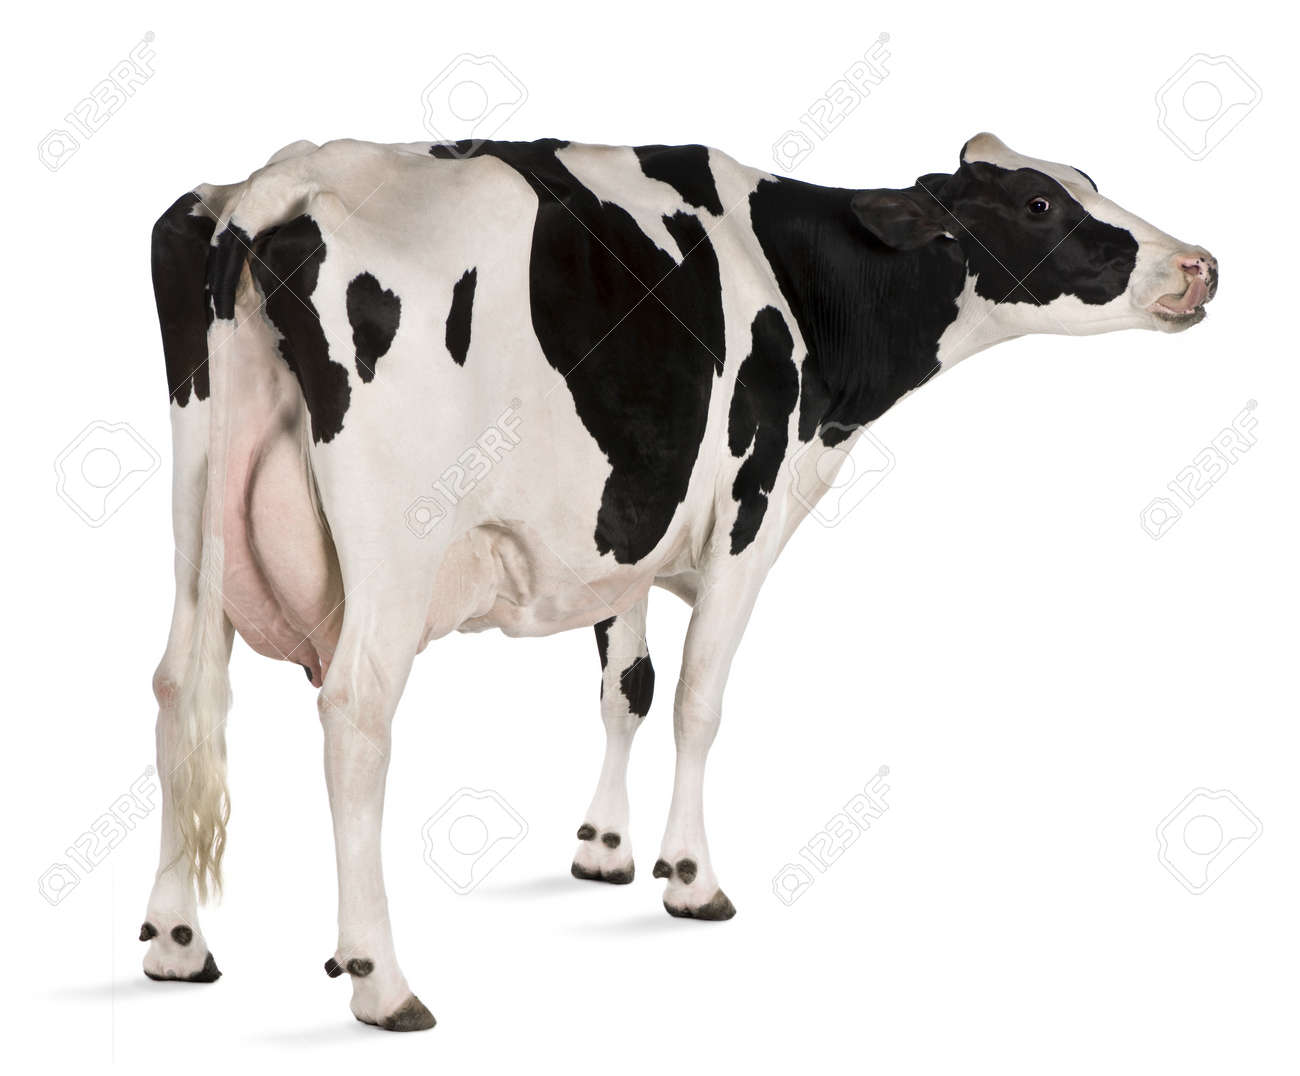 Holstein cow, 5 years old, standing in front of white background Stock Photo - 7980227